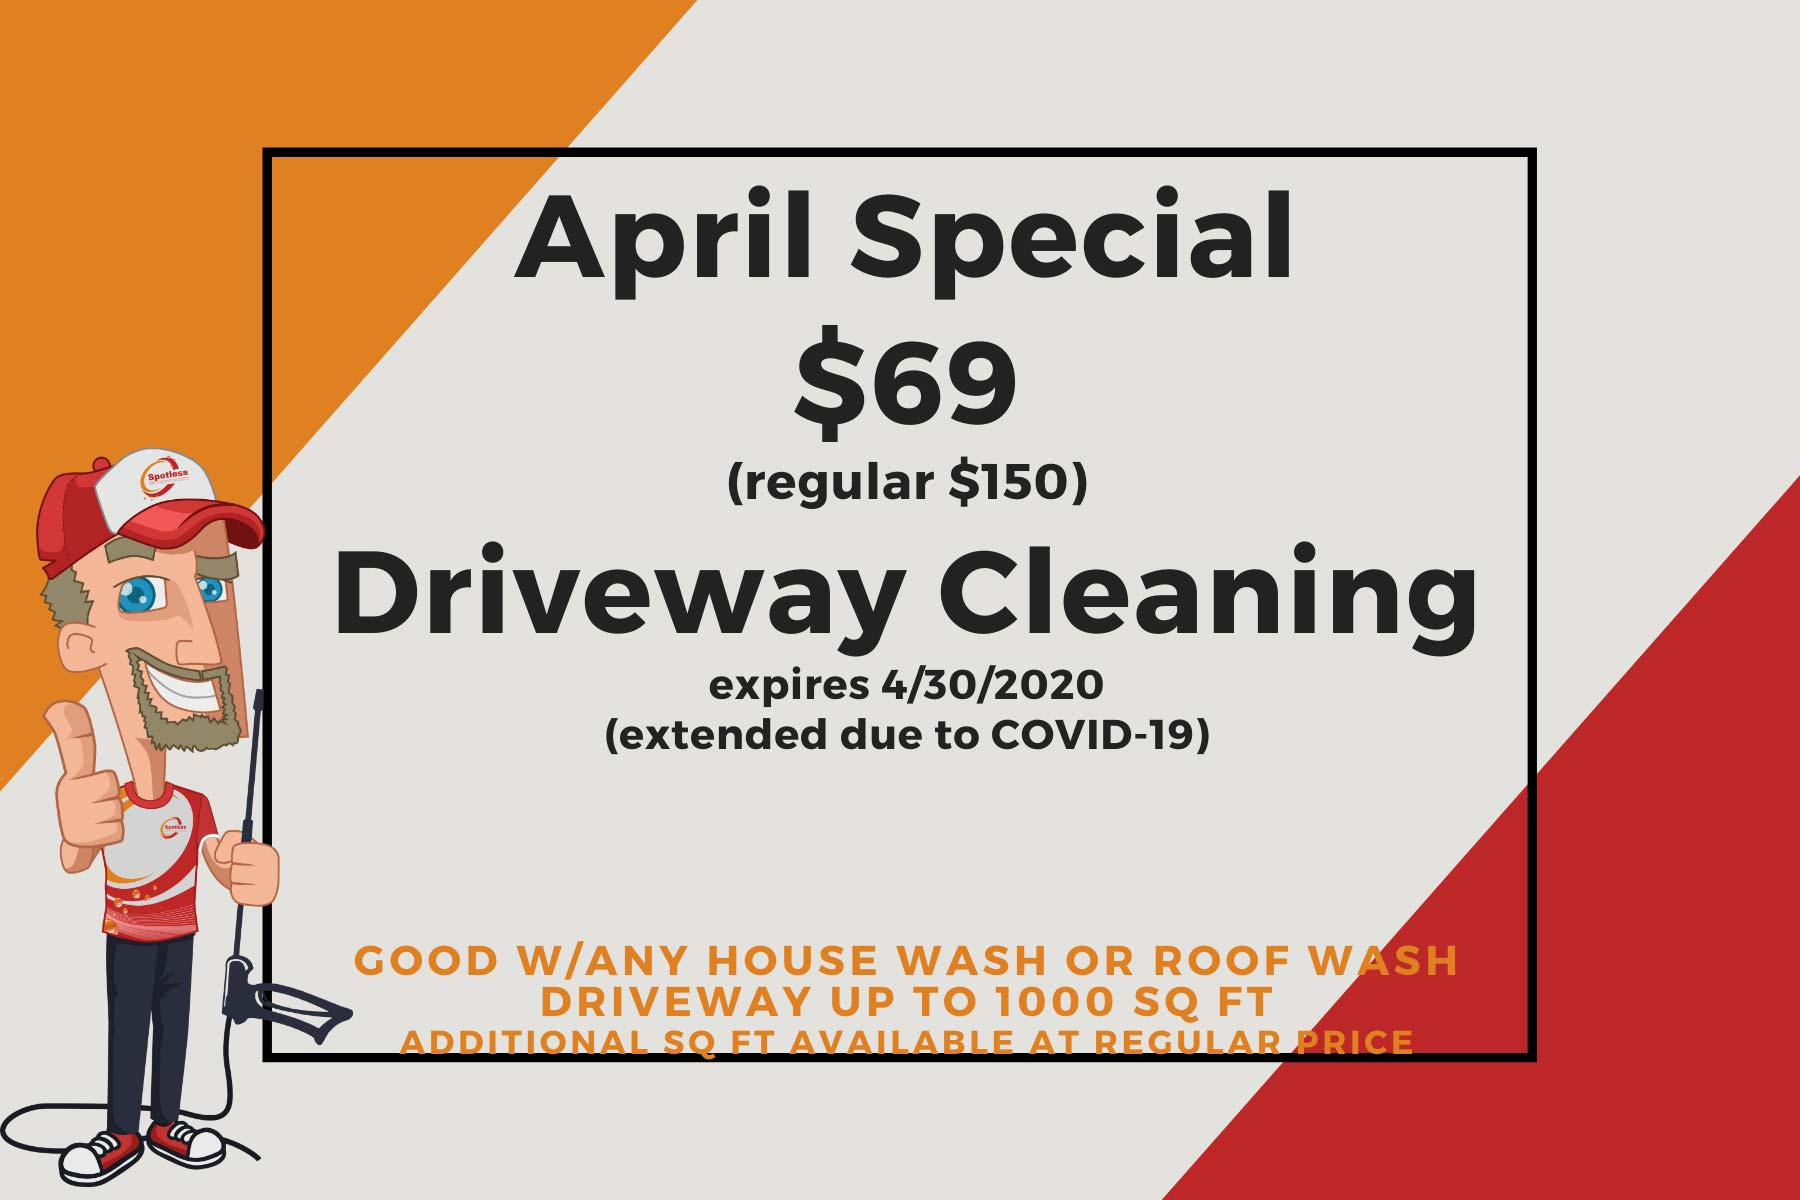 Take advantage of our April Special for Driveway Cleaning